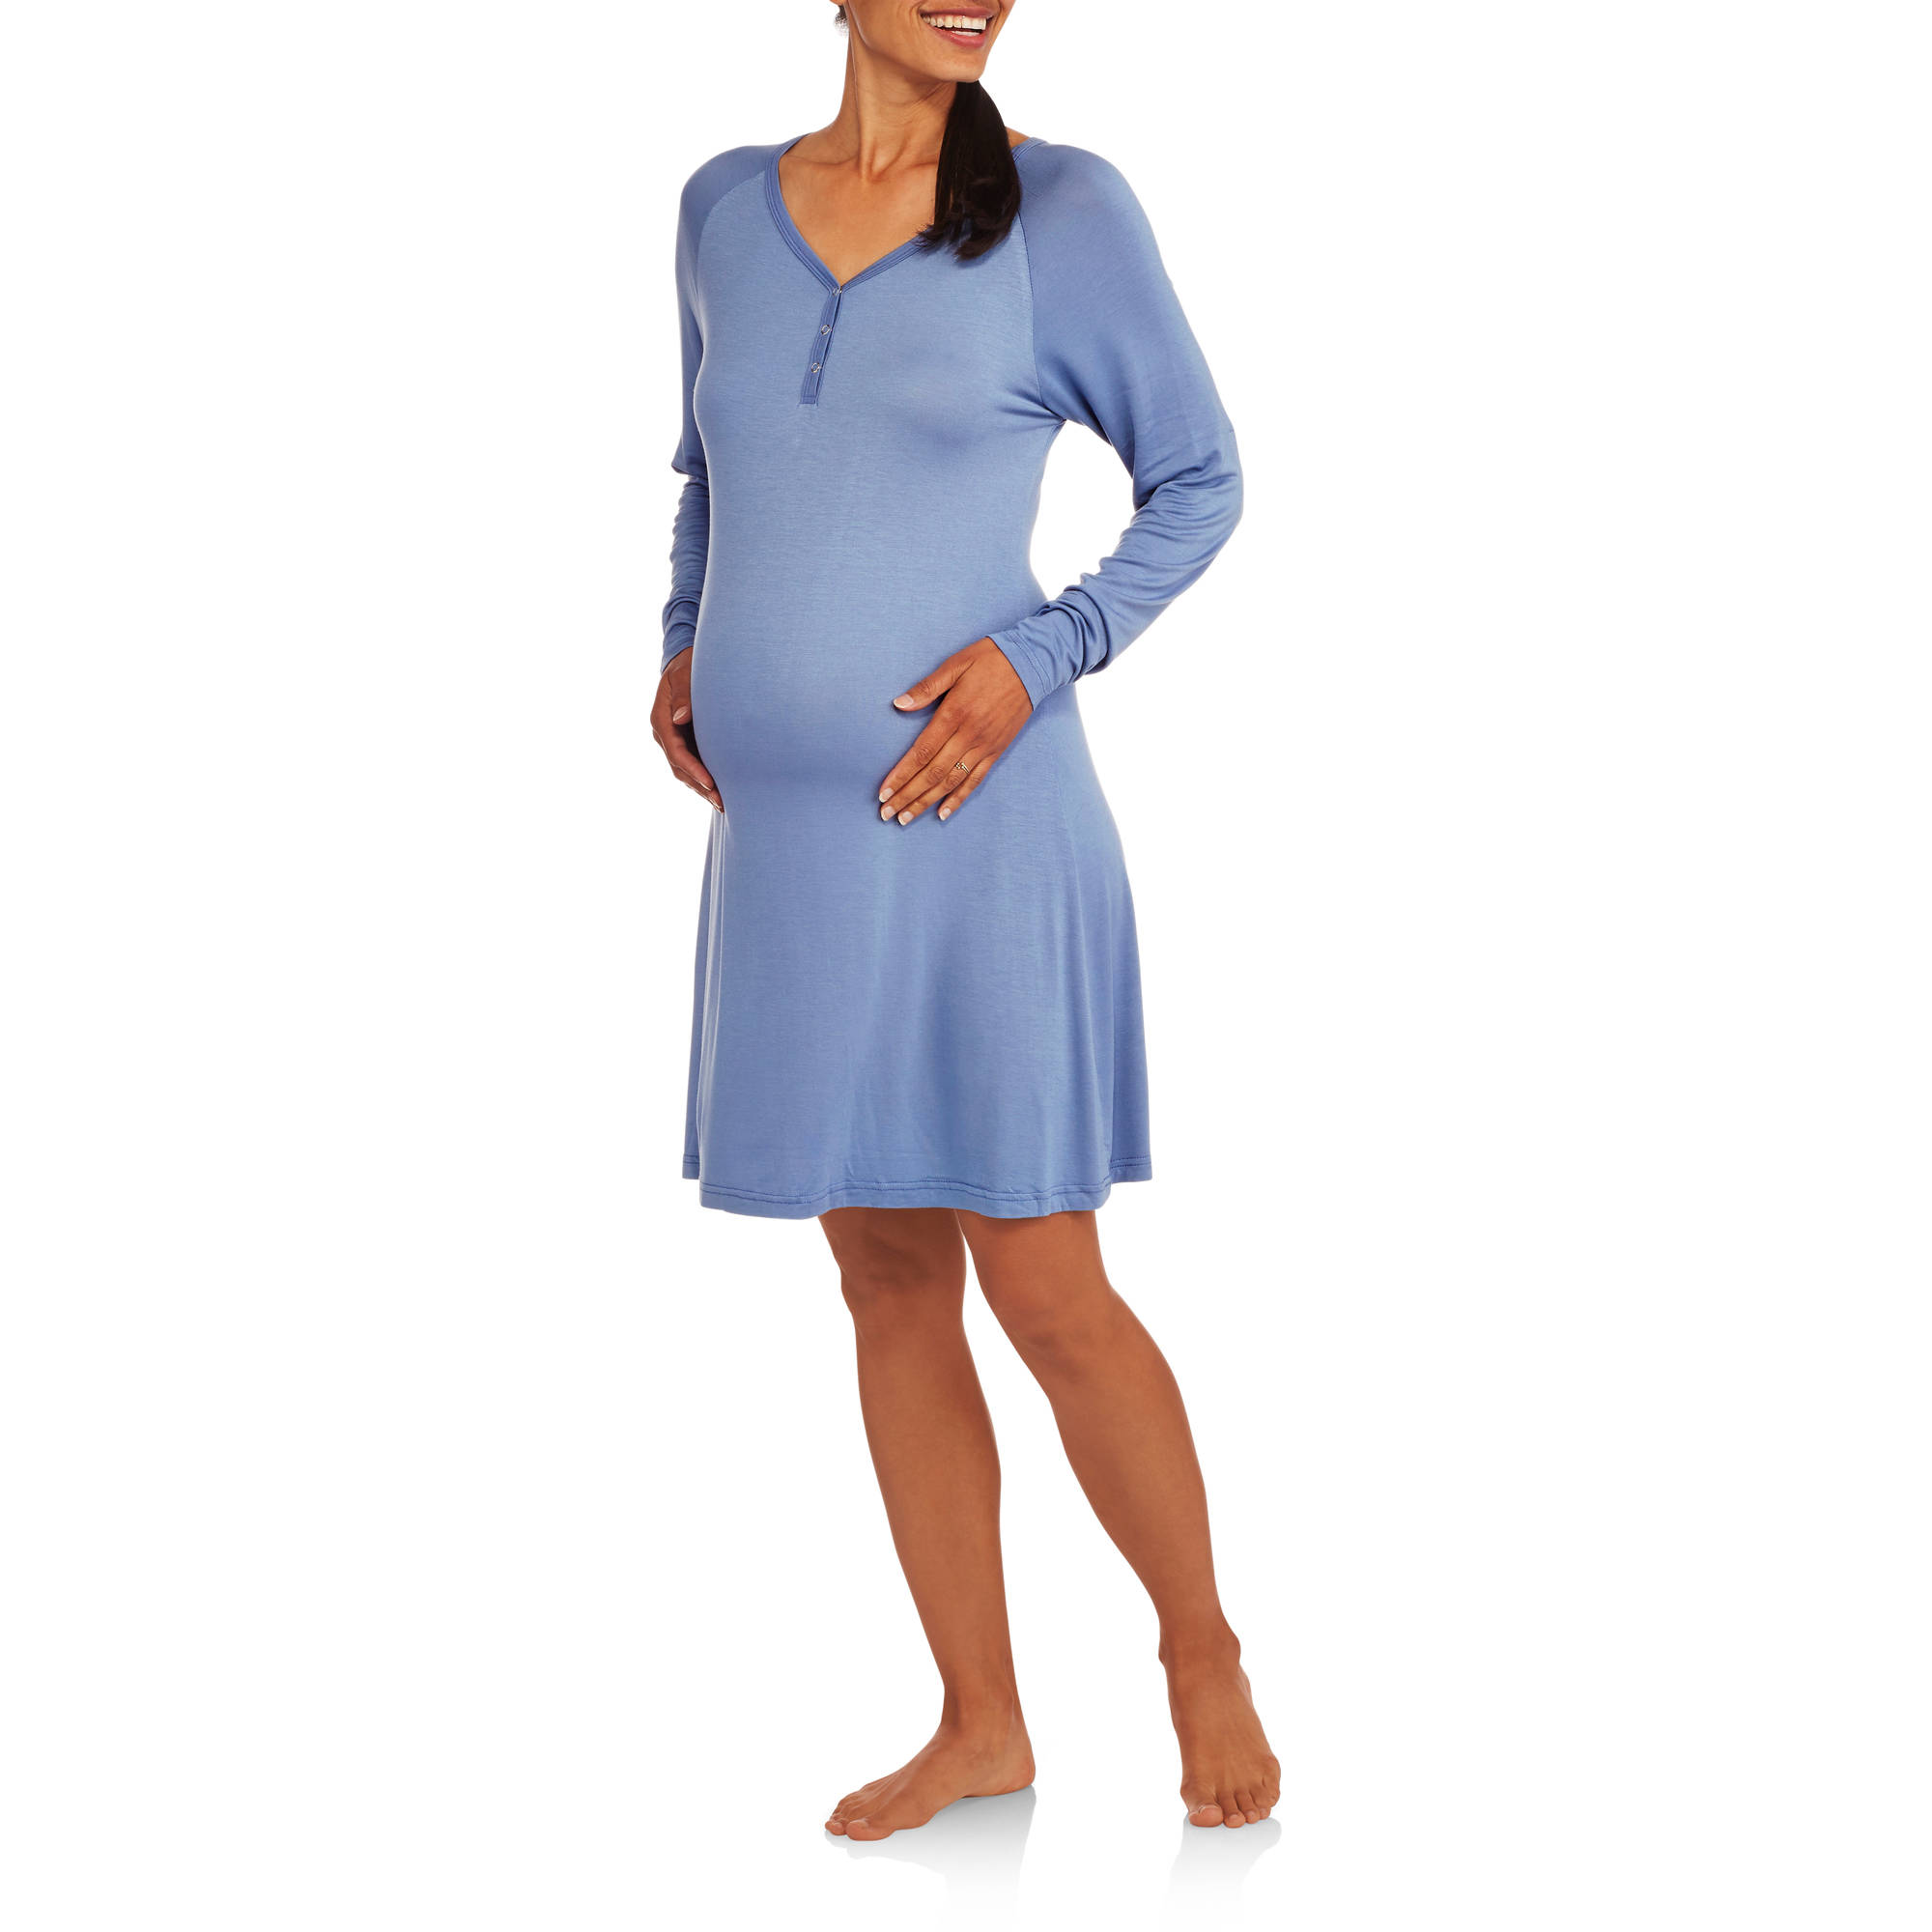 Maternity 3/4 Sleeve Henley Sleep Gown - Walmart.com